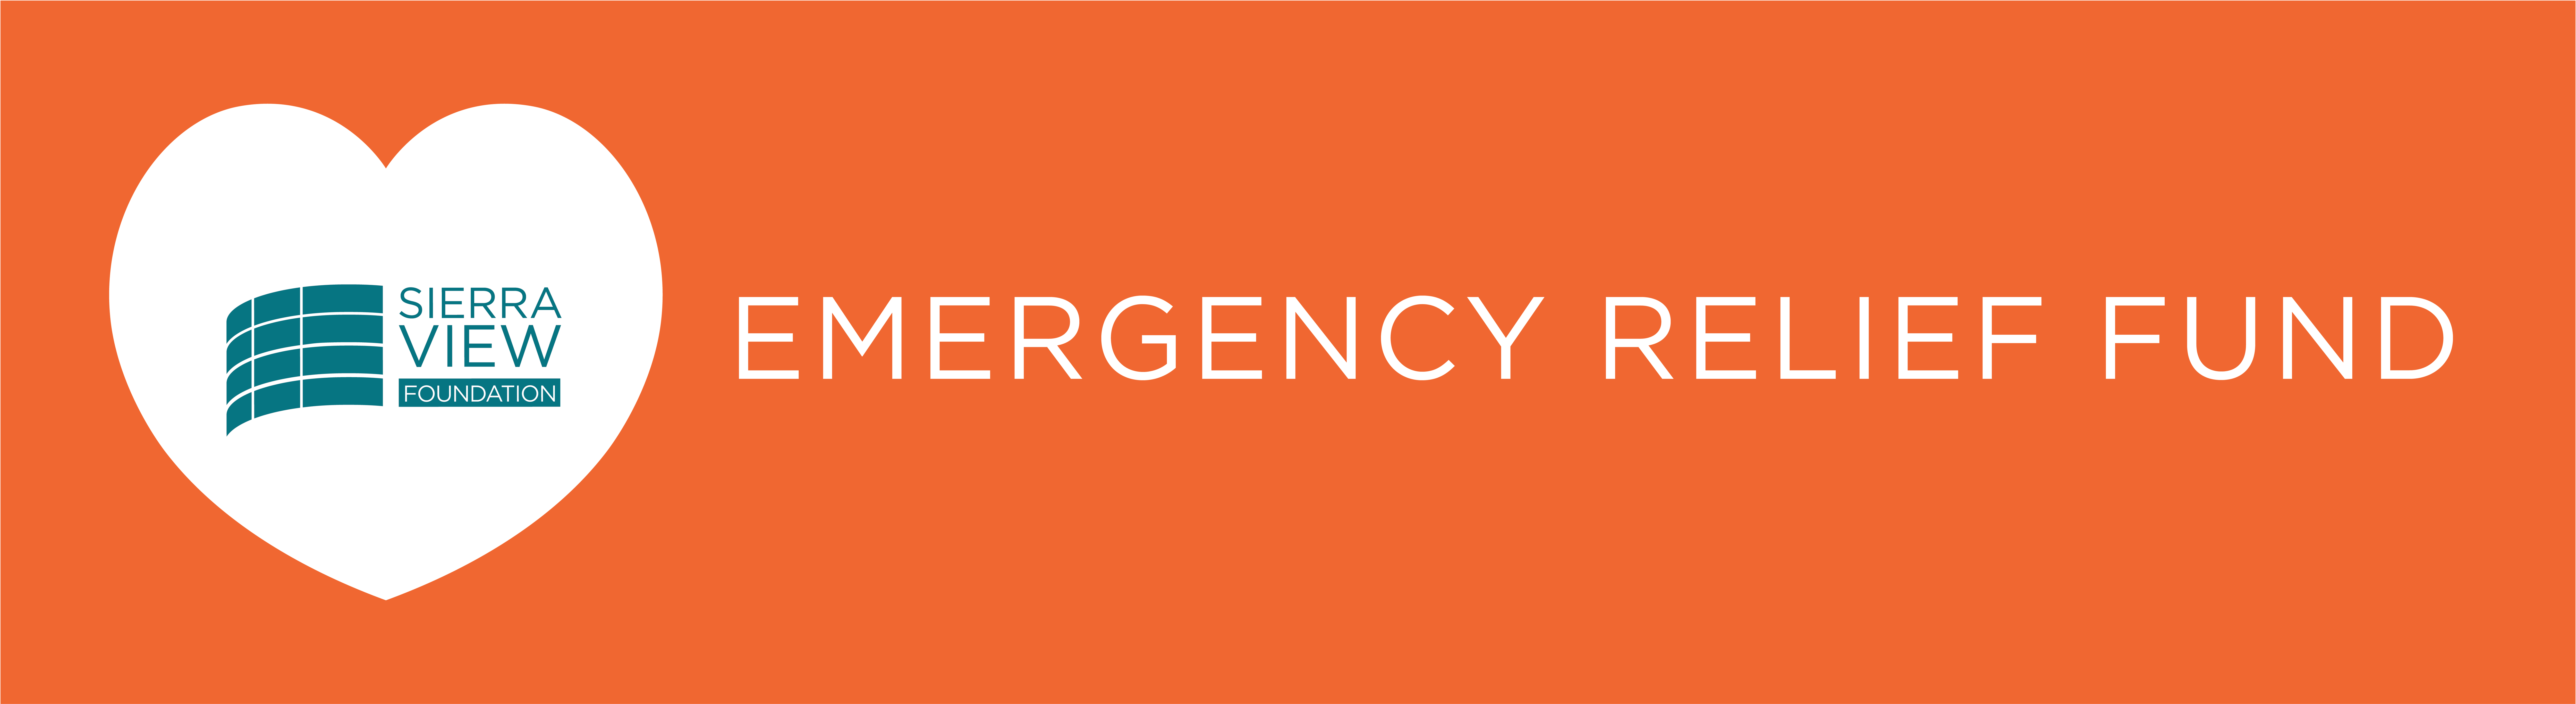 Image of Sierra View Foundatoin logo and Emergency Relief Fund text